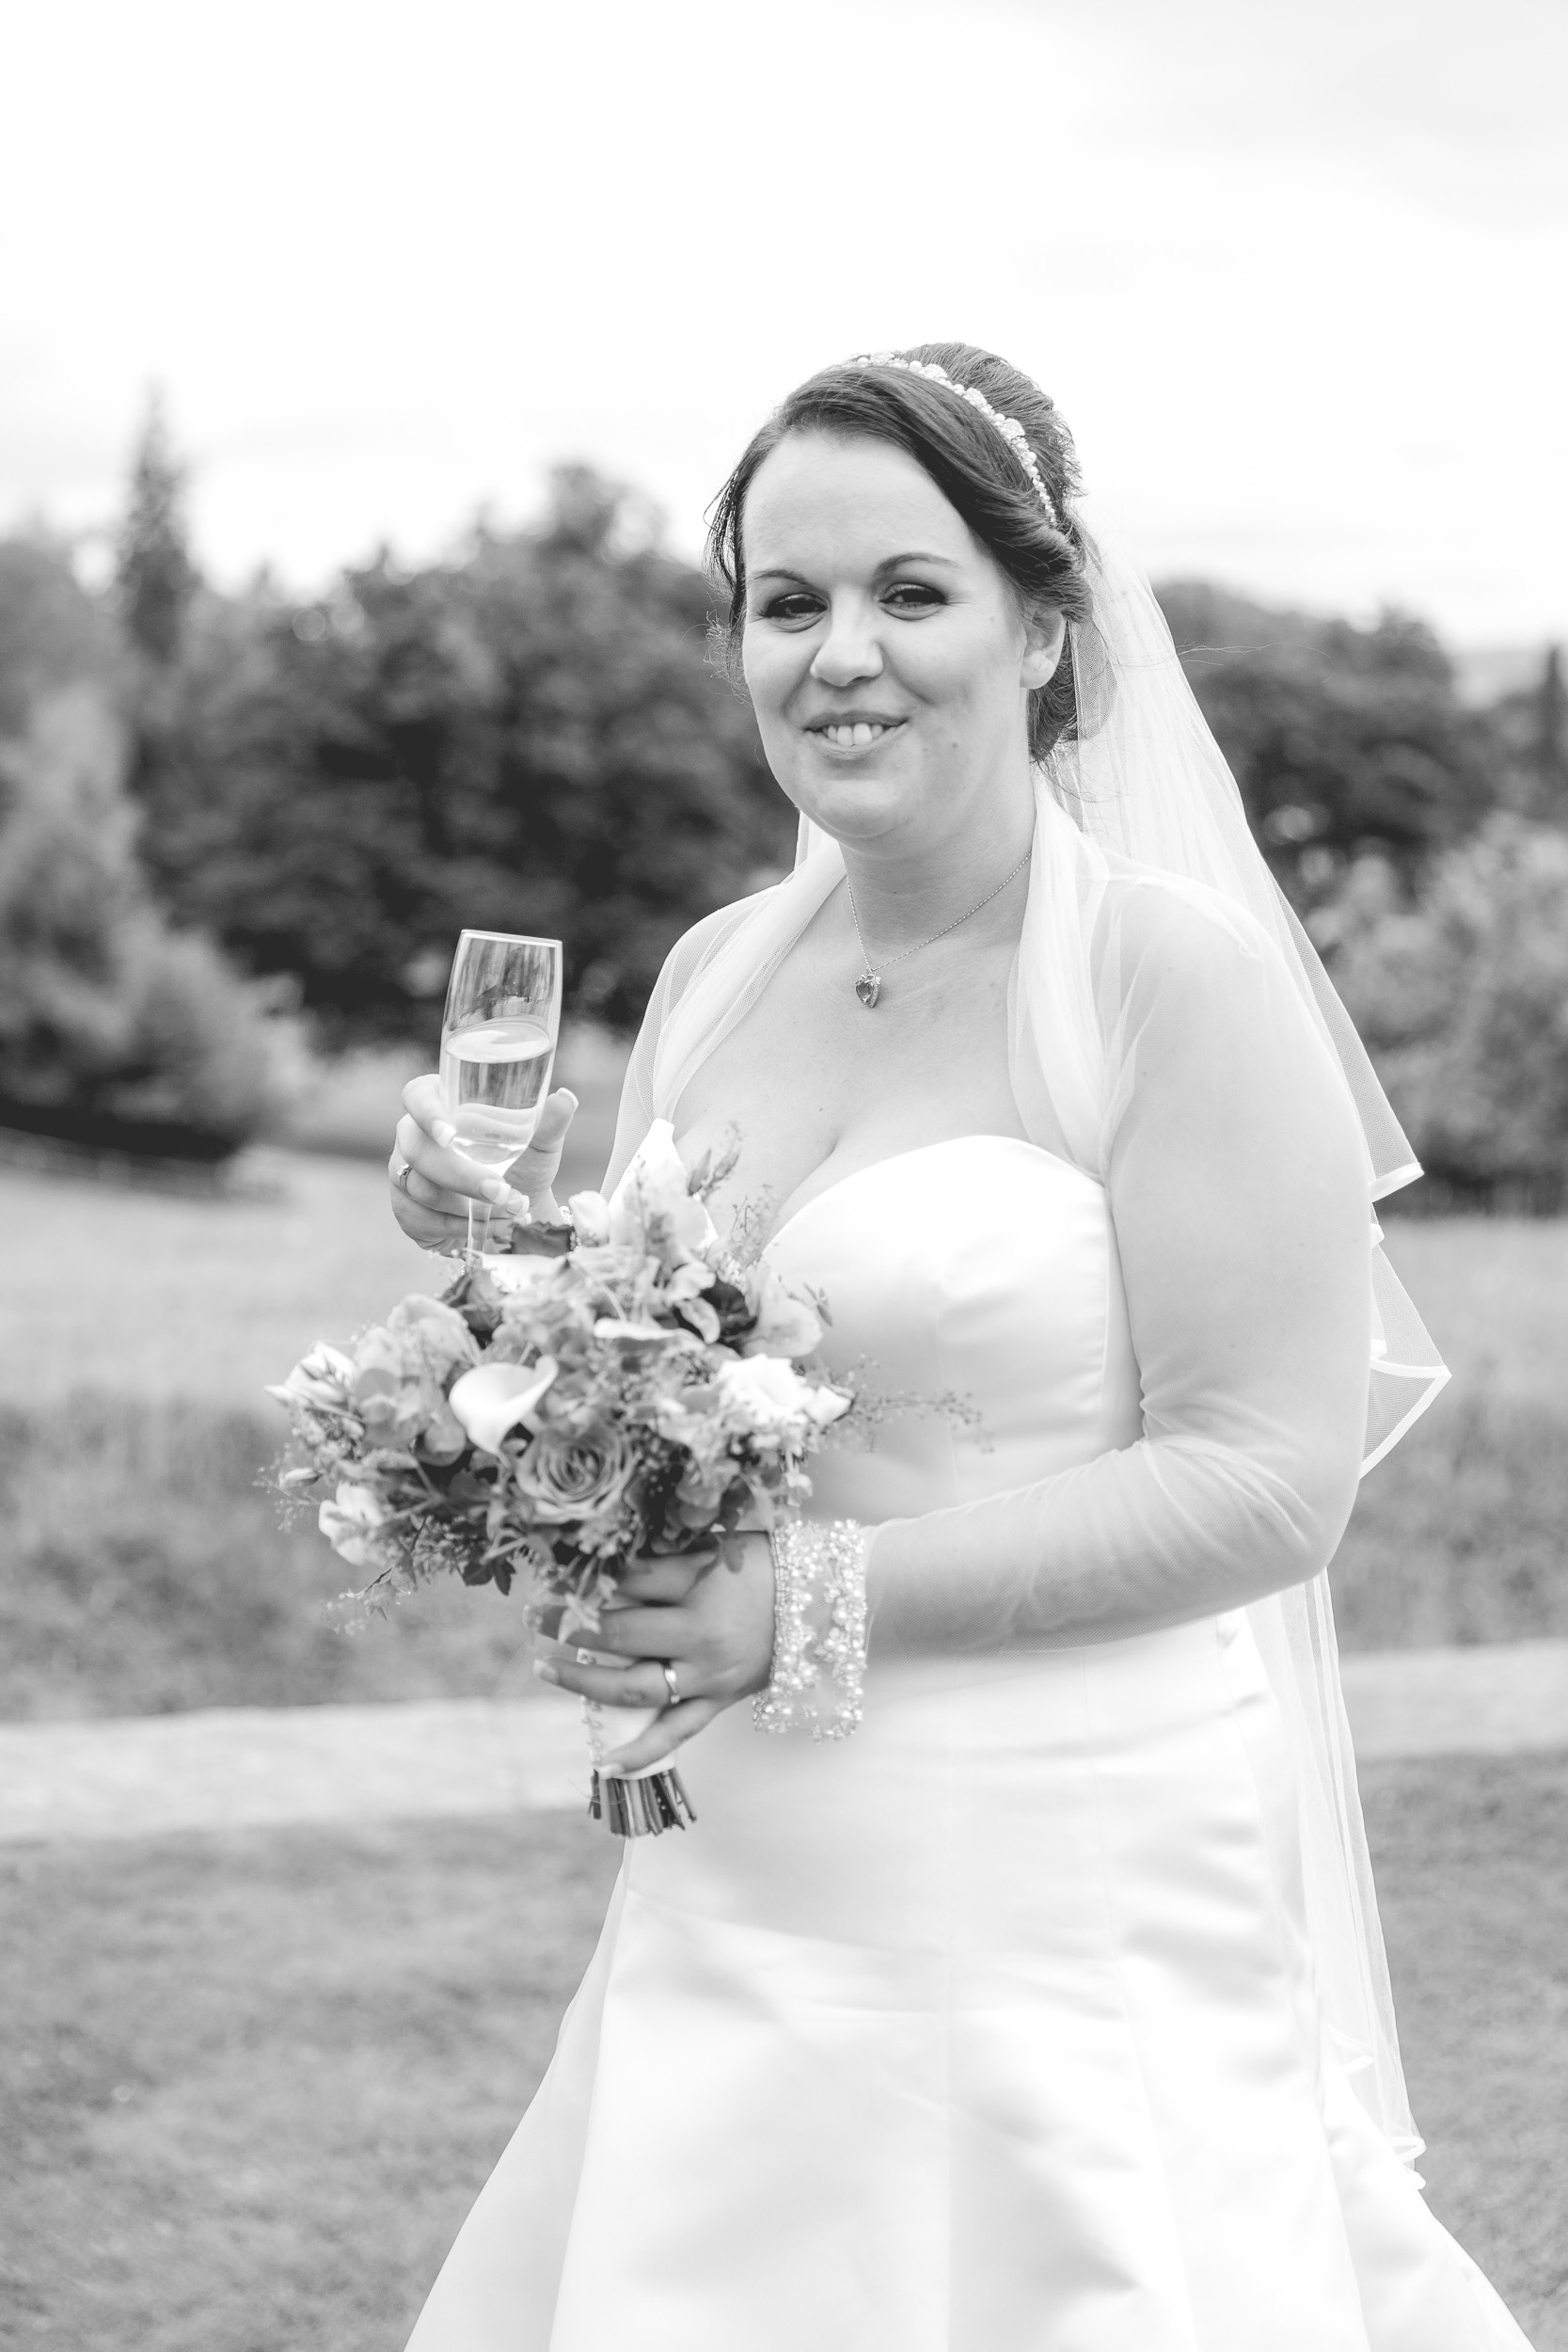 Nicola & Matt-Wedding-Coniston Cold Hotel-Yorkshire-photo-402.jpg